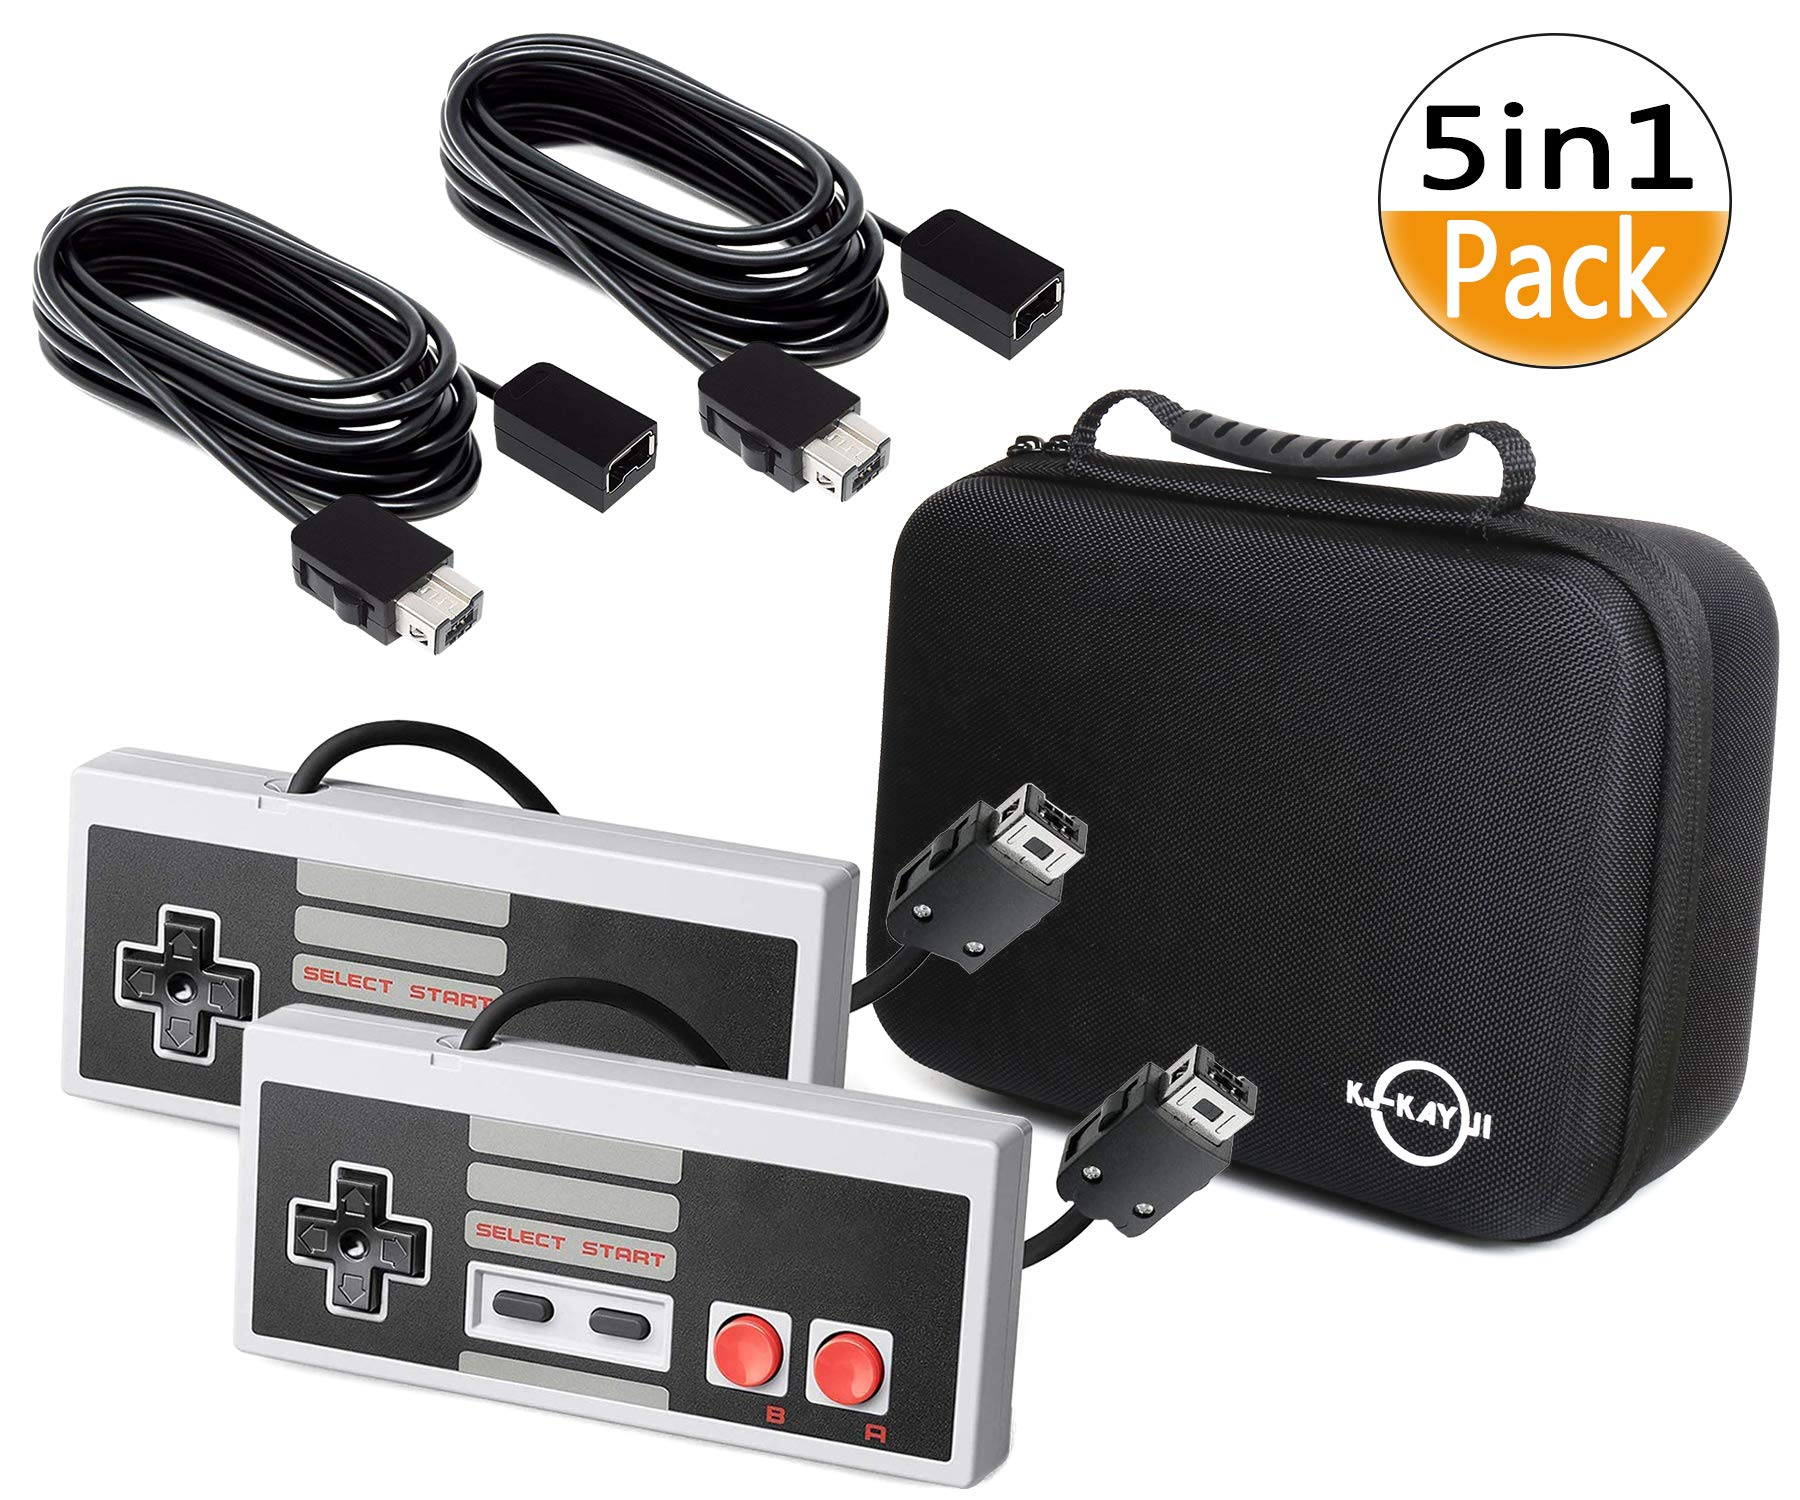 NES Classic Controller-5-in-1 Set for Nintendo Classic Mini Edition,2 Classic NES Mini Controller and 2 10Ft Extension Cable and a Travel Handbag,Applicable NES Classic Edition and Nes Classic Mini